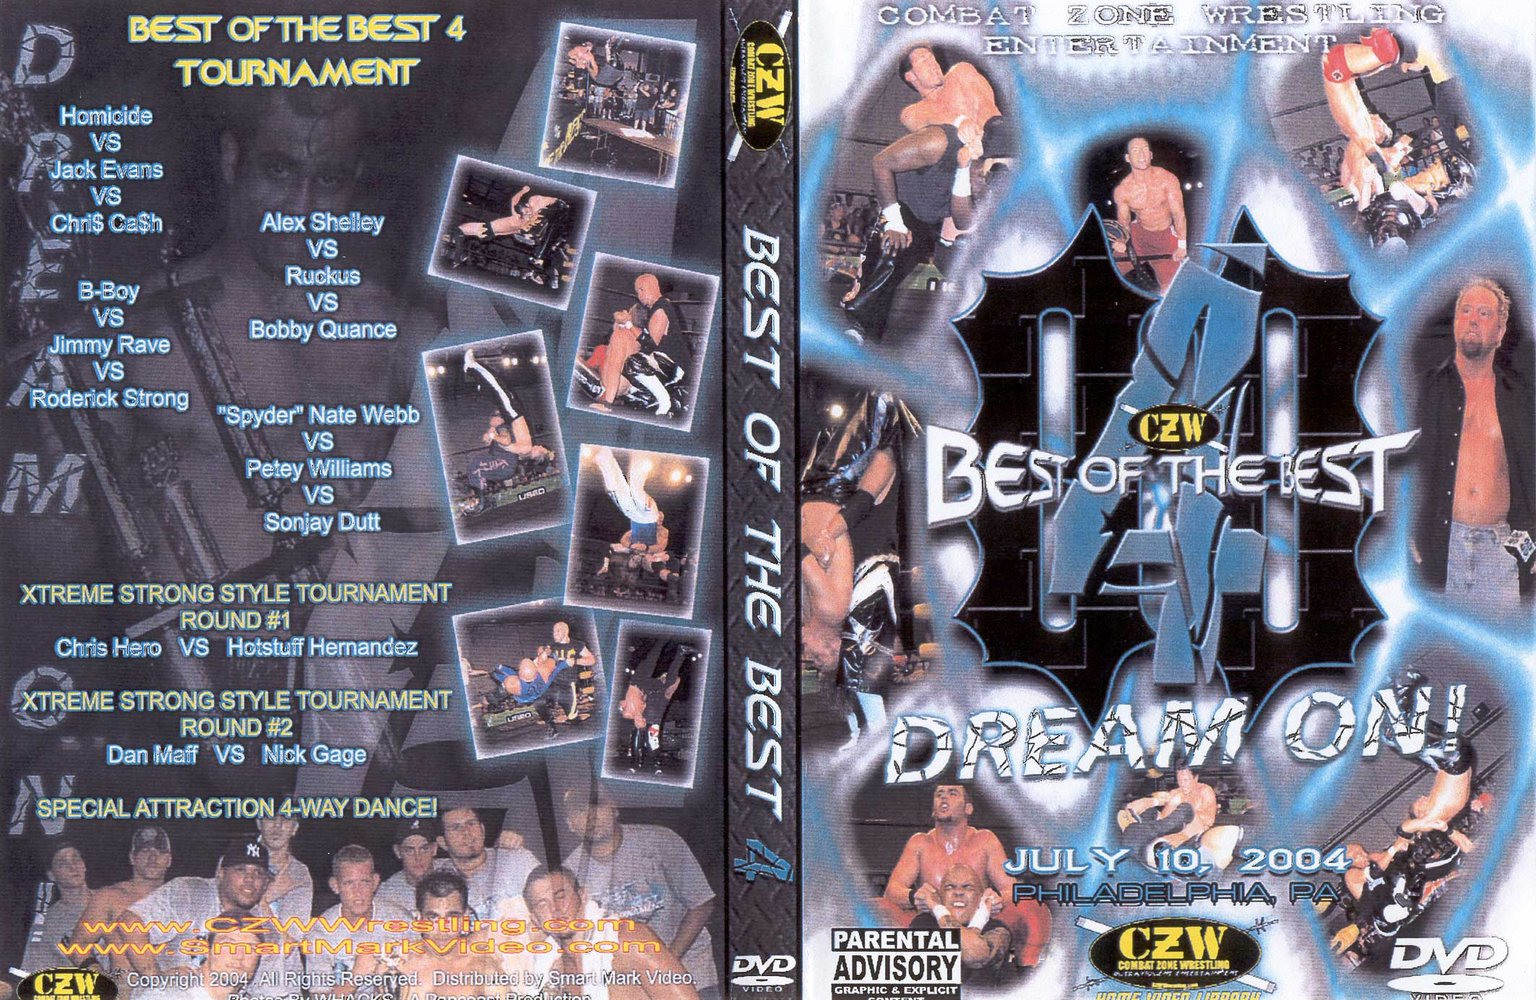 Czw_Best_Of_The_Best_4-[cdcovers_cc]-front